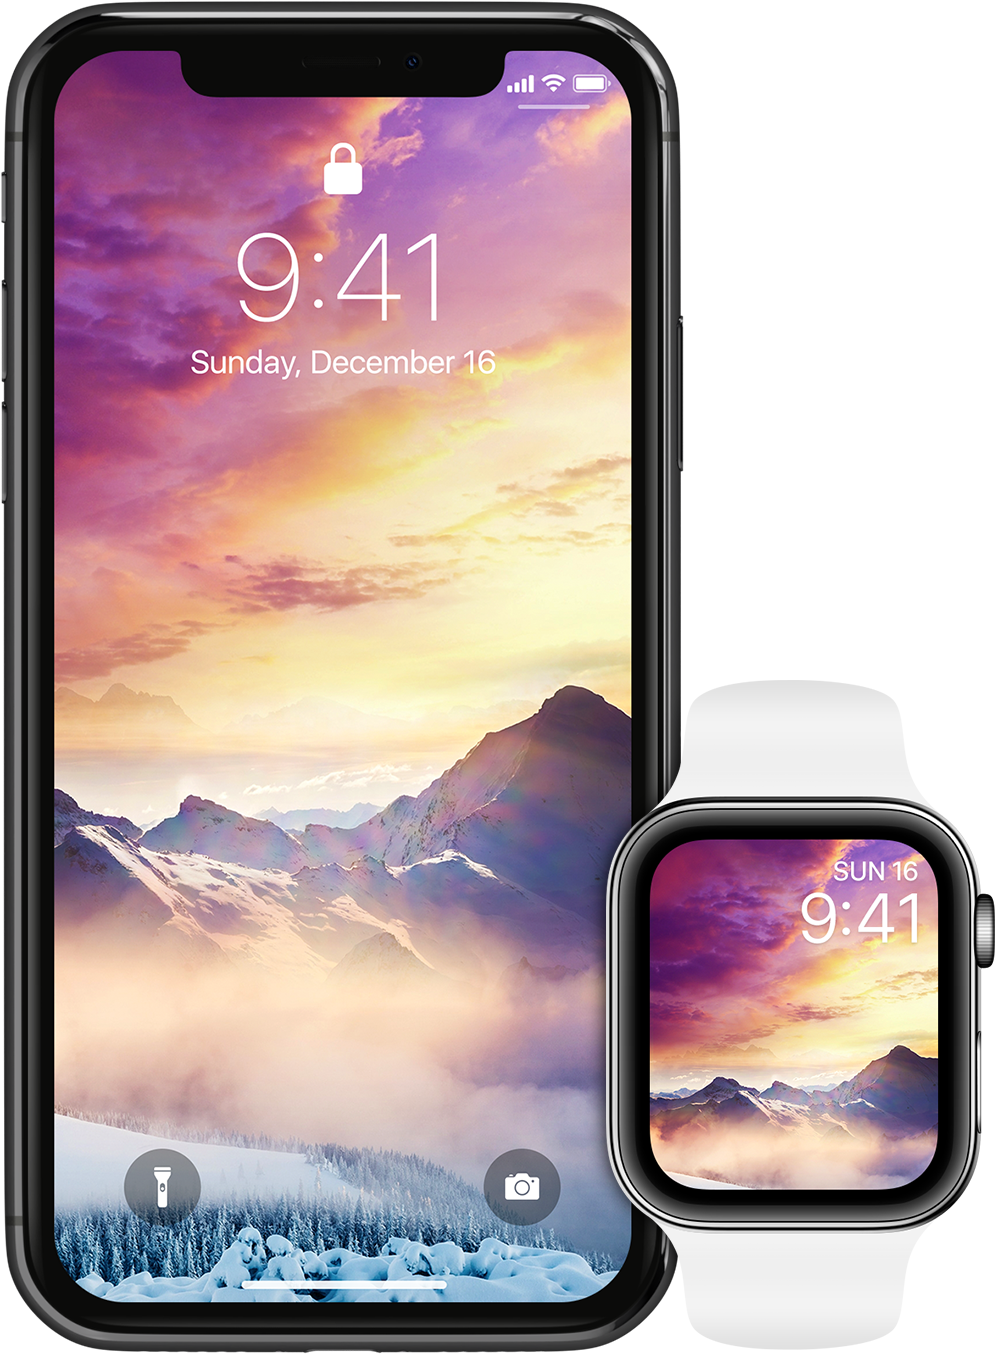 Each theme is a real masterpiece that can't be found anywhere else - just tilt your device to see more! Available on Apple Watch.